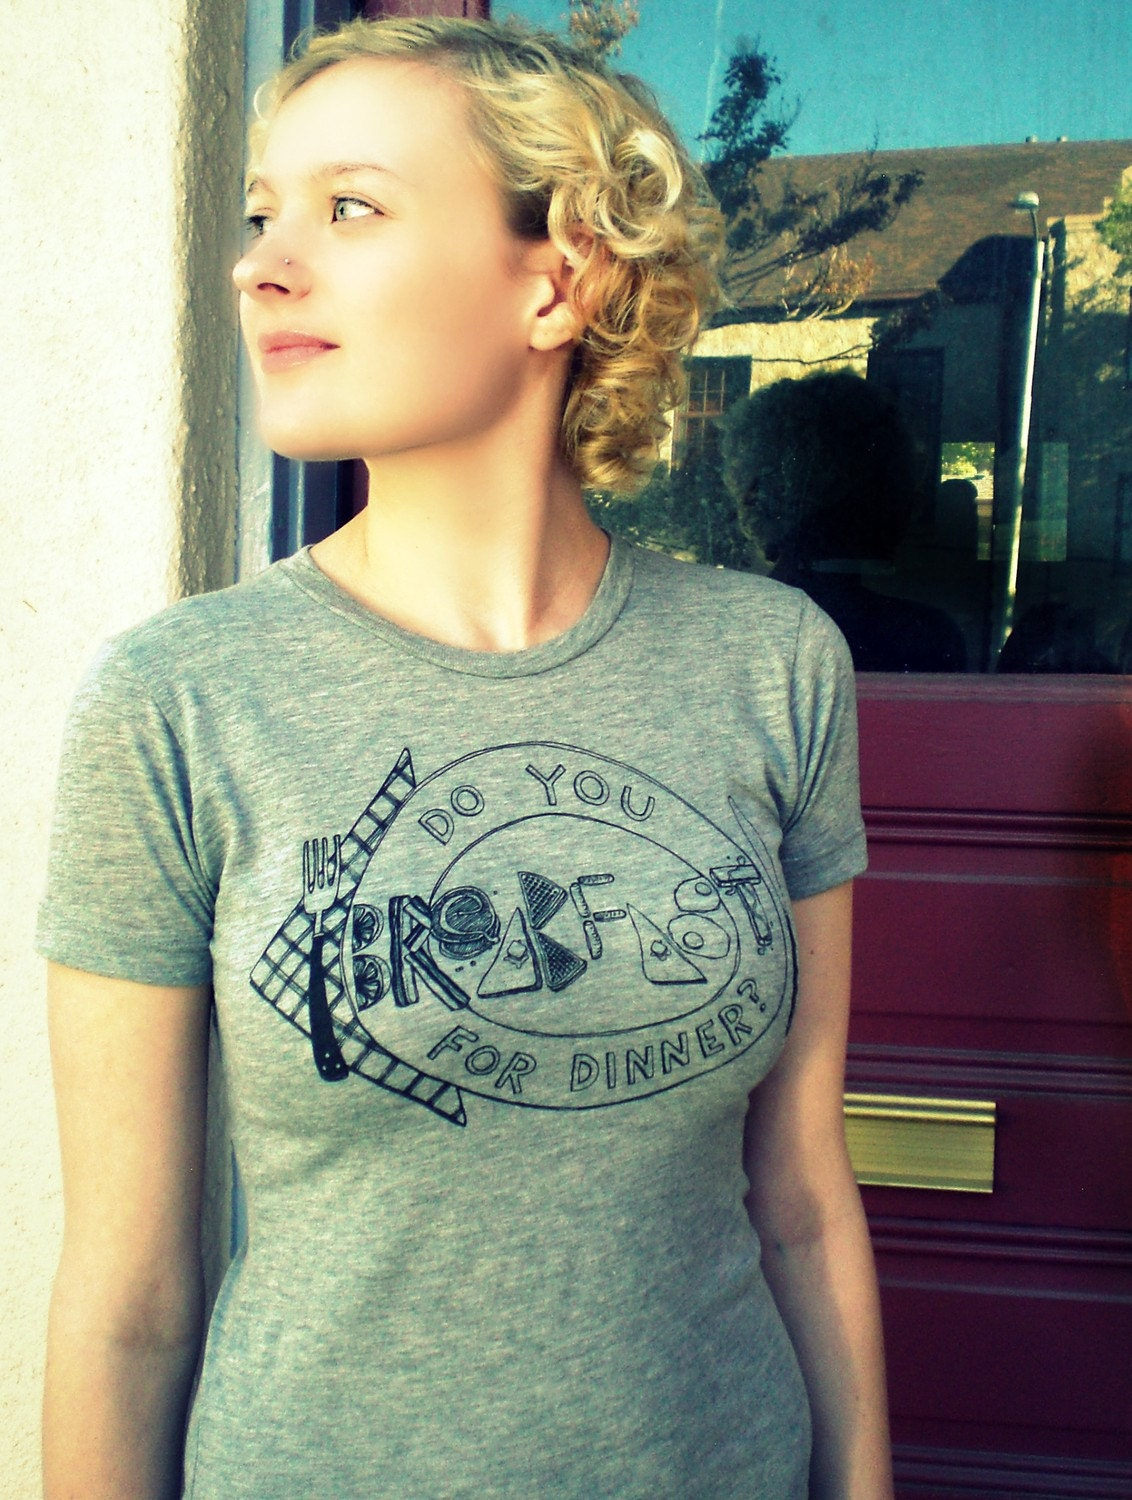 WHILE SUPPLIES LAST SALE -DO YOU BREAKFAST FOR DINNER- T-SHIRT/TEE WOMENS S.M. L. XL